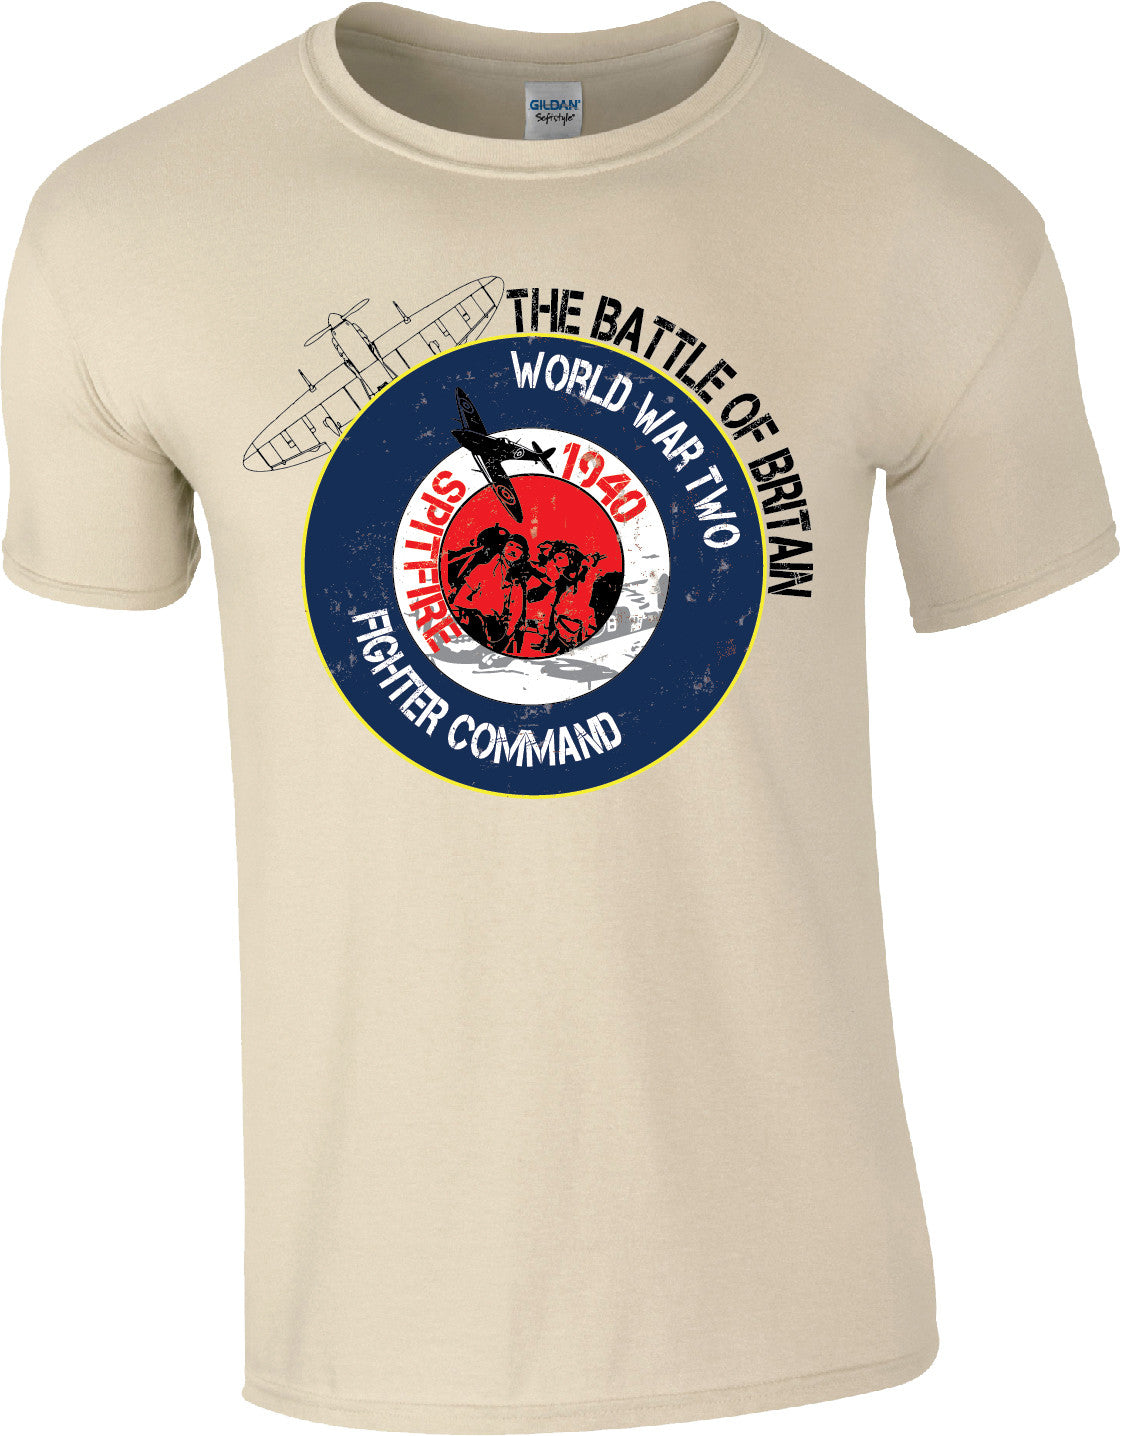 Battle Of Britain Ww2 T Shirt Got2haveone